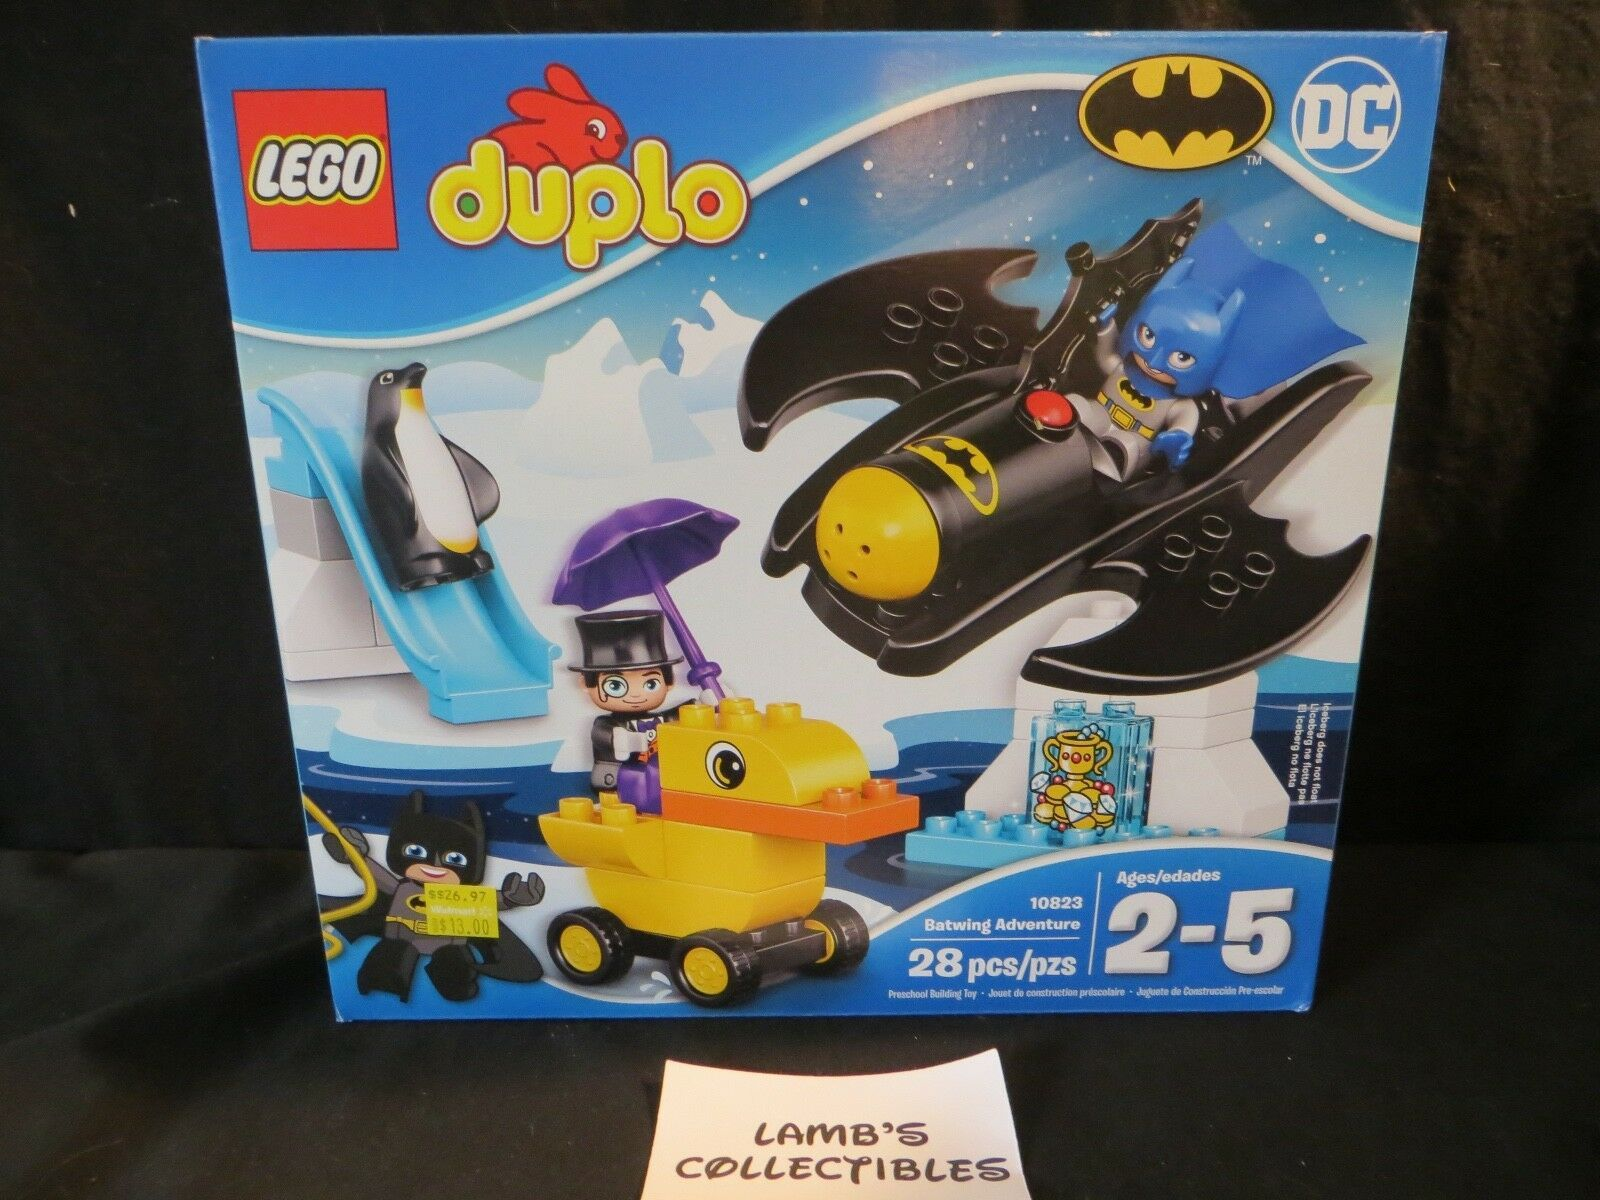 Primary image for Lego Duplo Batwing Adventure sealed 28 pieces set 10823 building blocks bricks